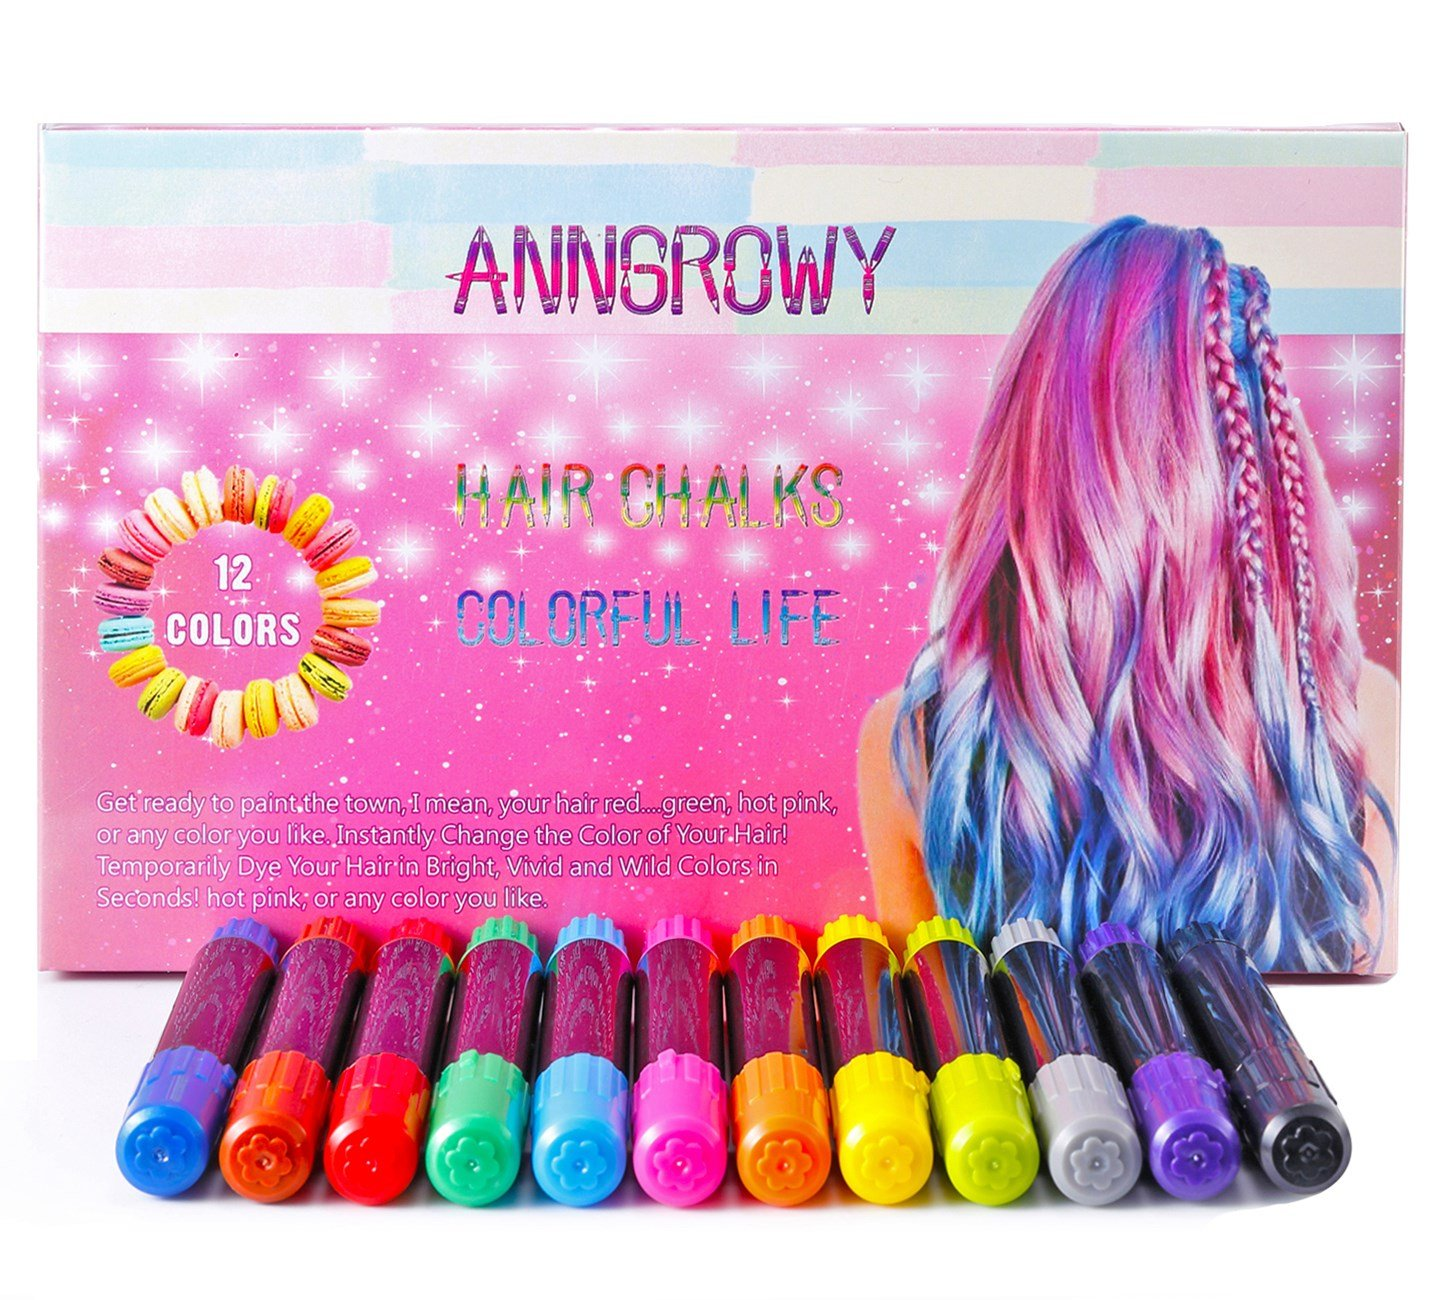 Hair Chalk for Girls Temporary Hair Color 12 Colors Non-Toxic Washable Hair Chalk Pens for Dark Hair and Blonde Brown Auburn Hair Birthday Gifts Present For Girls Hair Dye for Girls